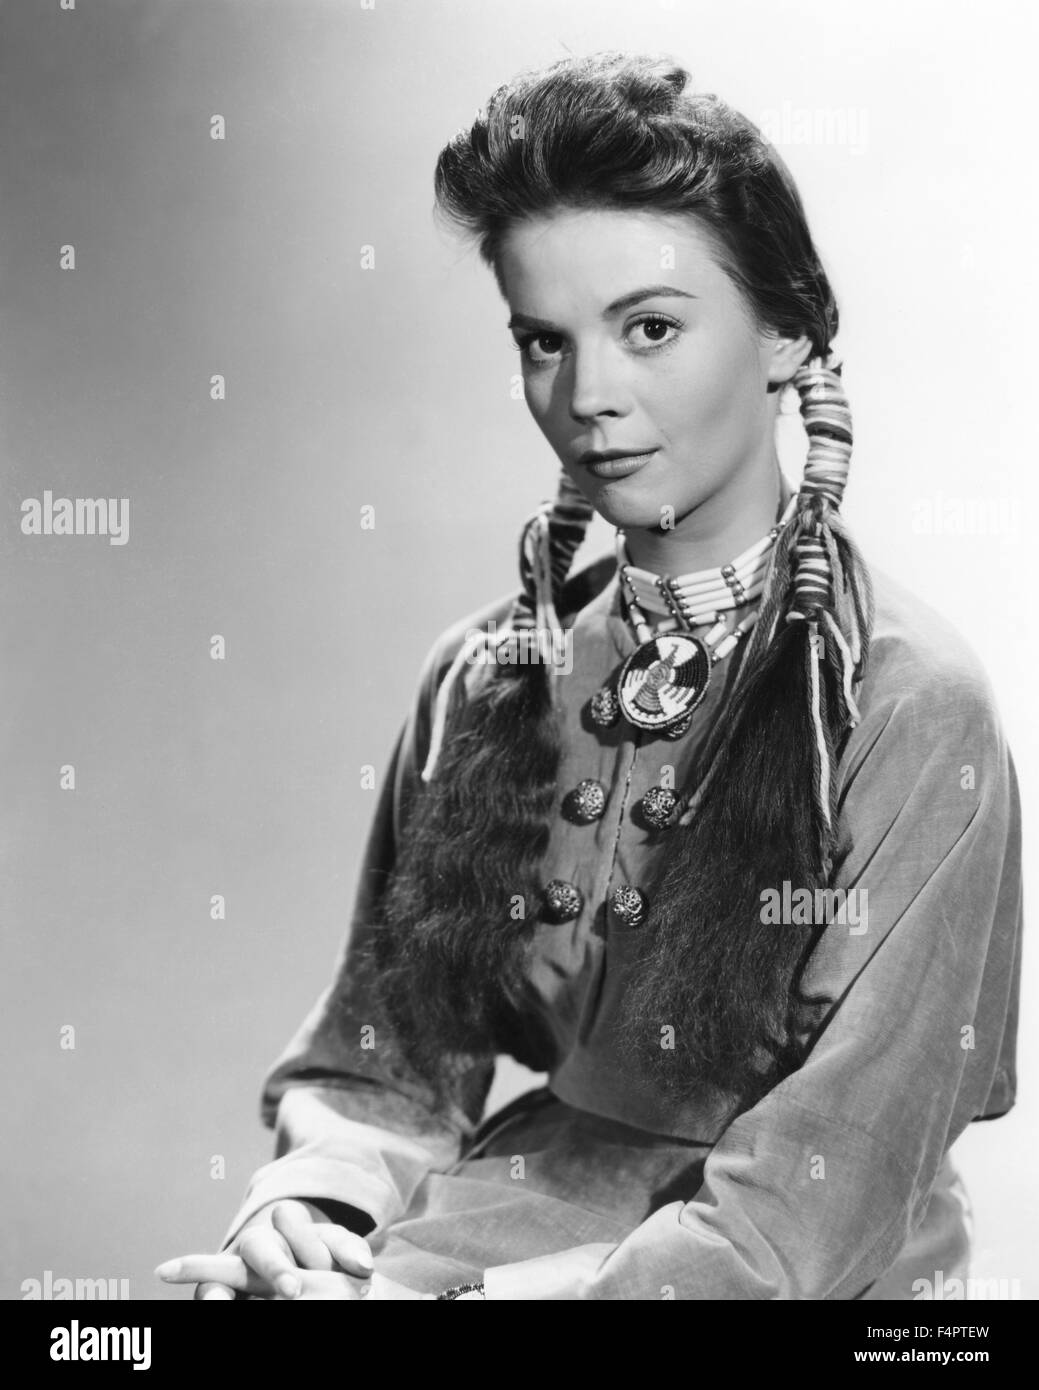 Natalie Wood / The Searchers / 1956 directed by John Ford [Warner Bros. Pictures] - Stock Image